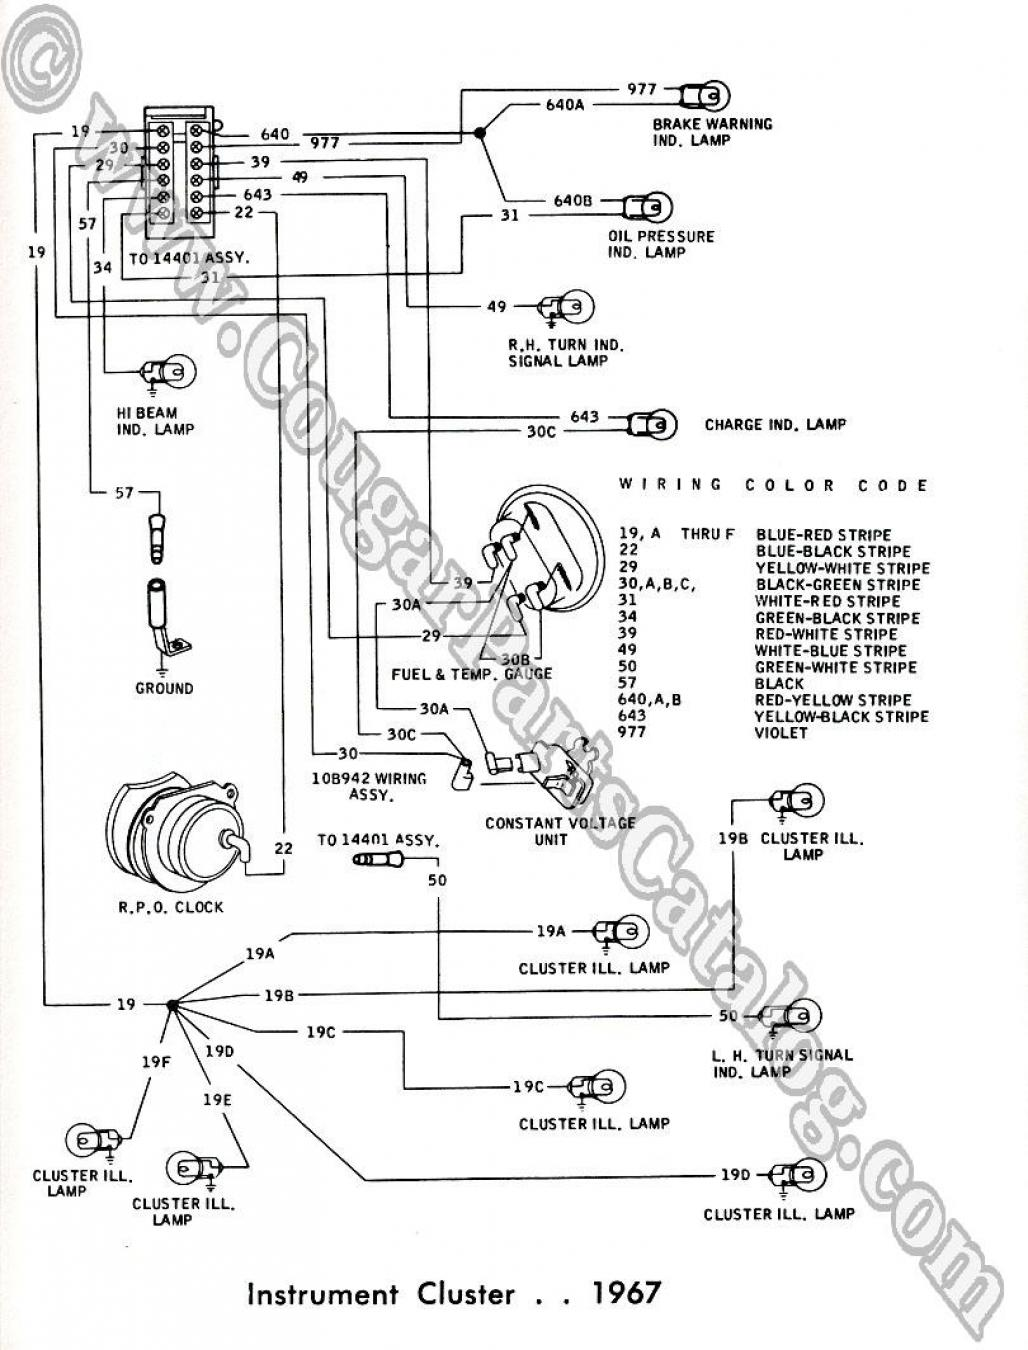 1967 Cougar Turn Signal Wiring Diagram, 1967, Free Engine